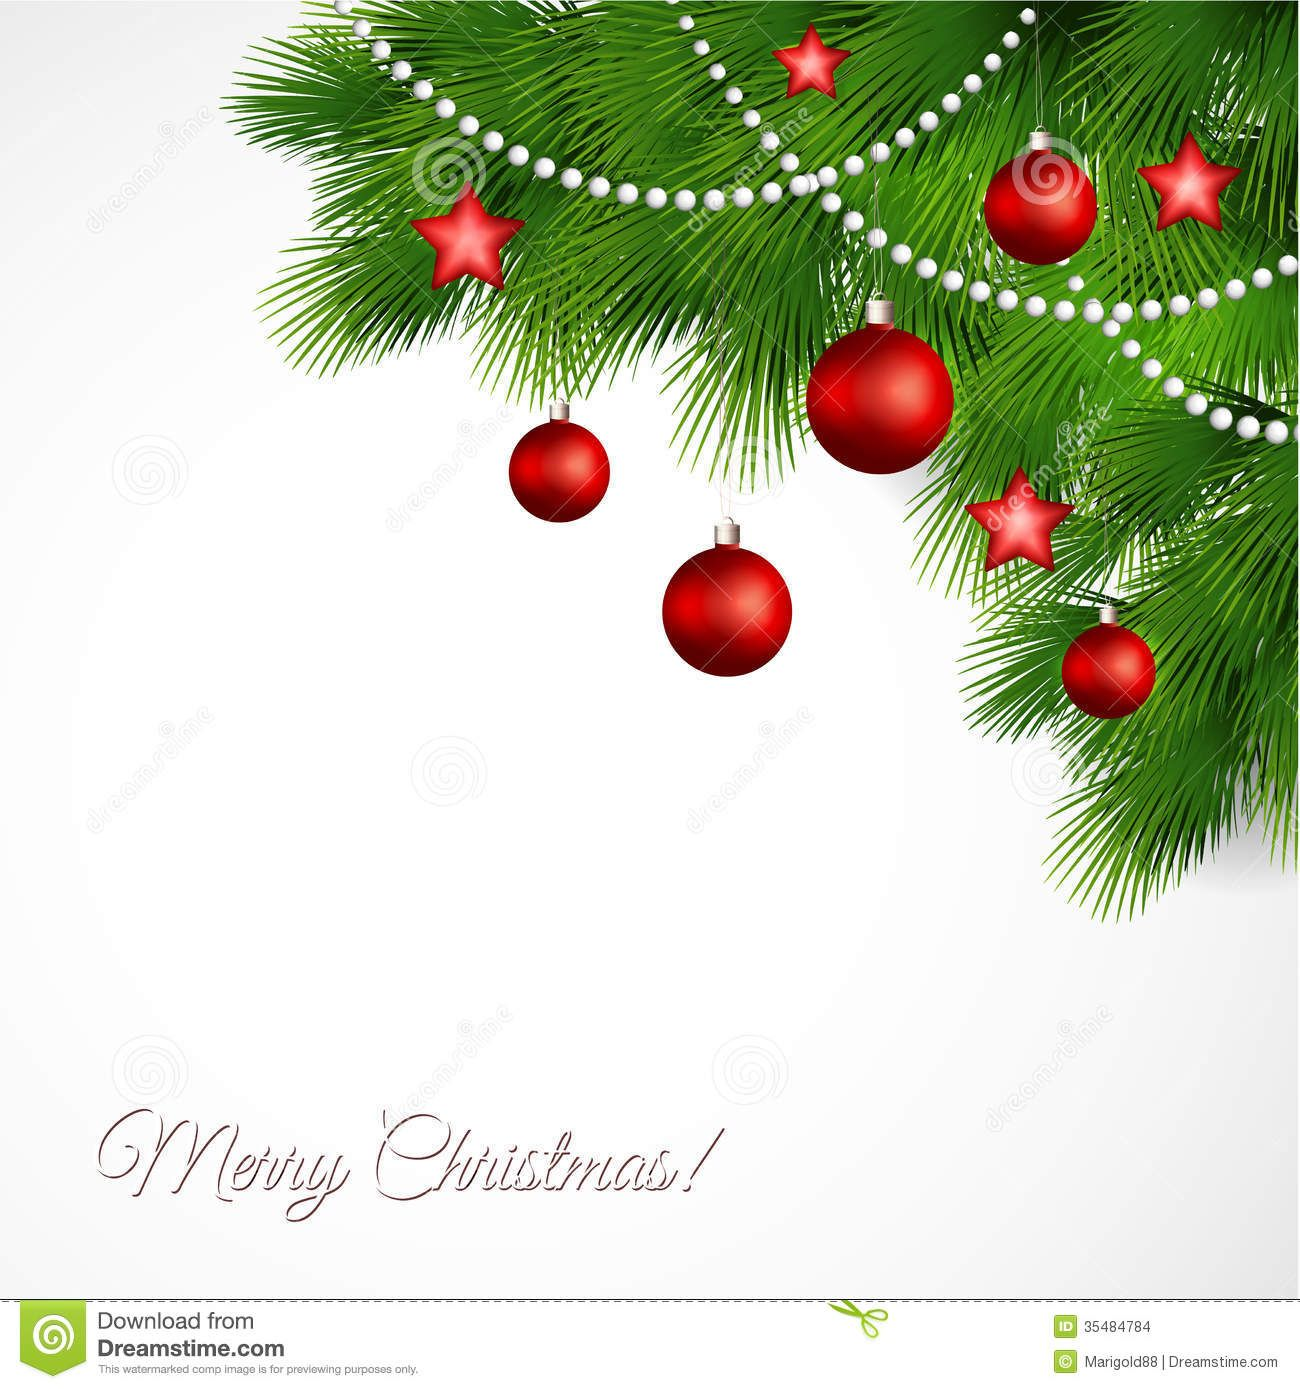 Vector merry christmas greeting card eps 35484784g 13001389 vector merry christmas greeting card eps 35484784g m4hsunfo